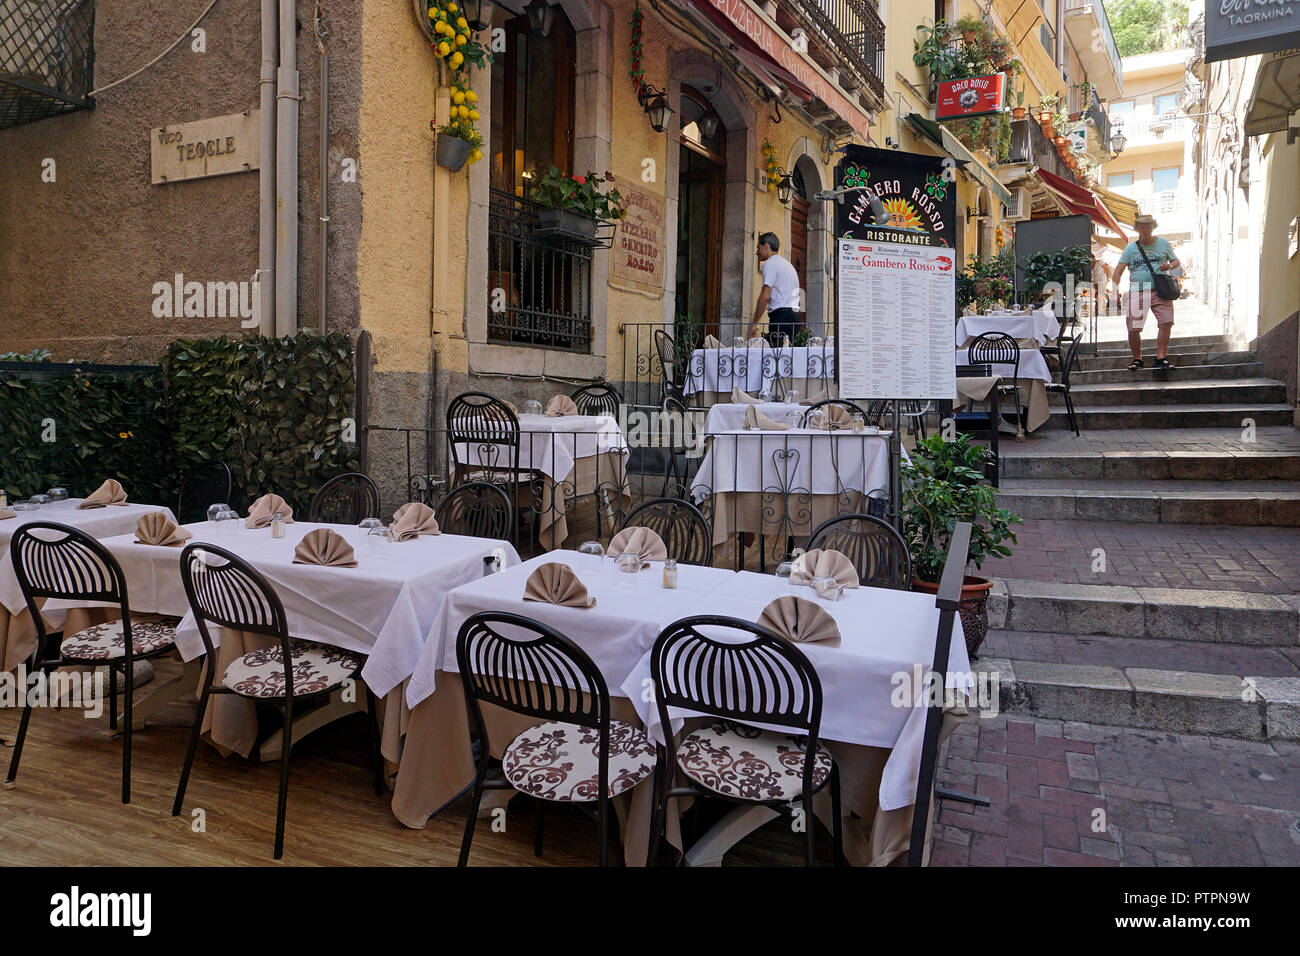 Idyllic restaurant at a alley of the old town of Taormina, Sicily, Italy - Stock Image